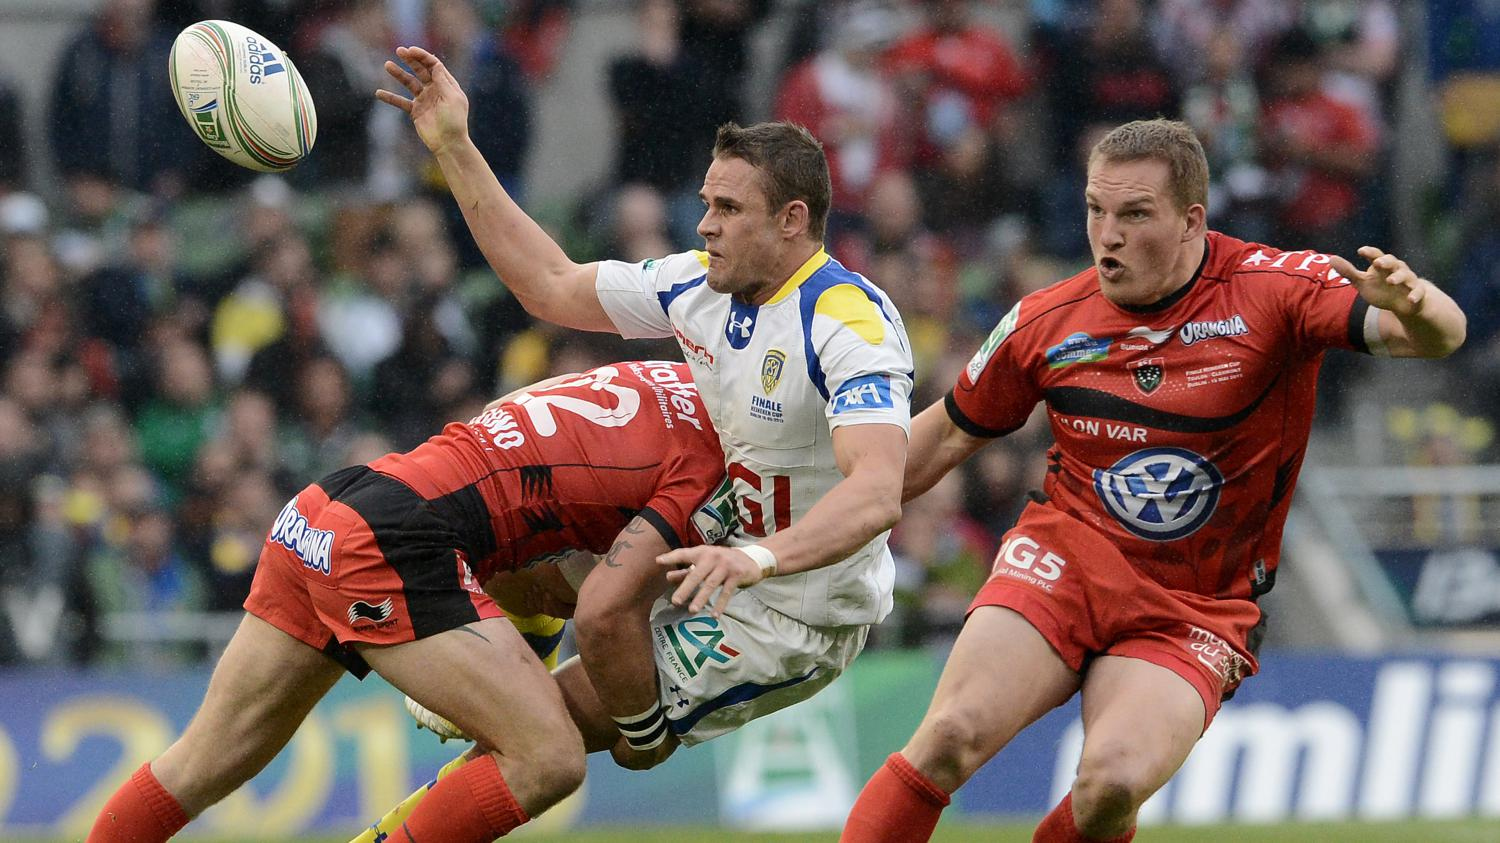 Direct rugby revivez la finale de la coupe d europe entre clermont et toulon - Rugby toulon coupe d europe ...